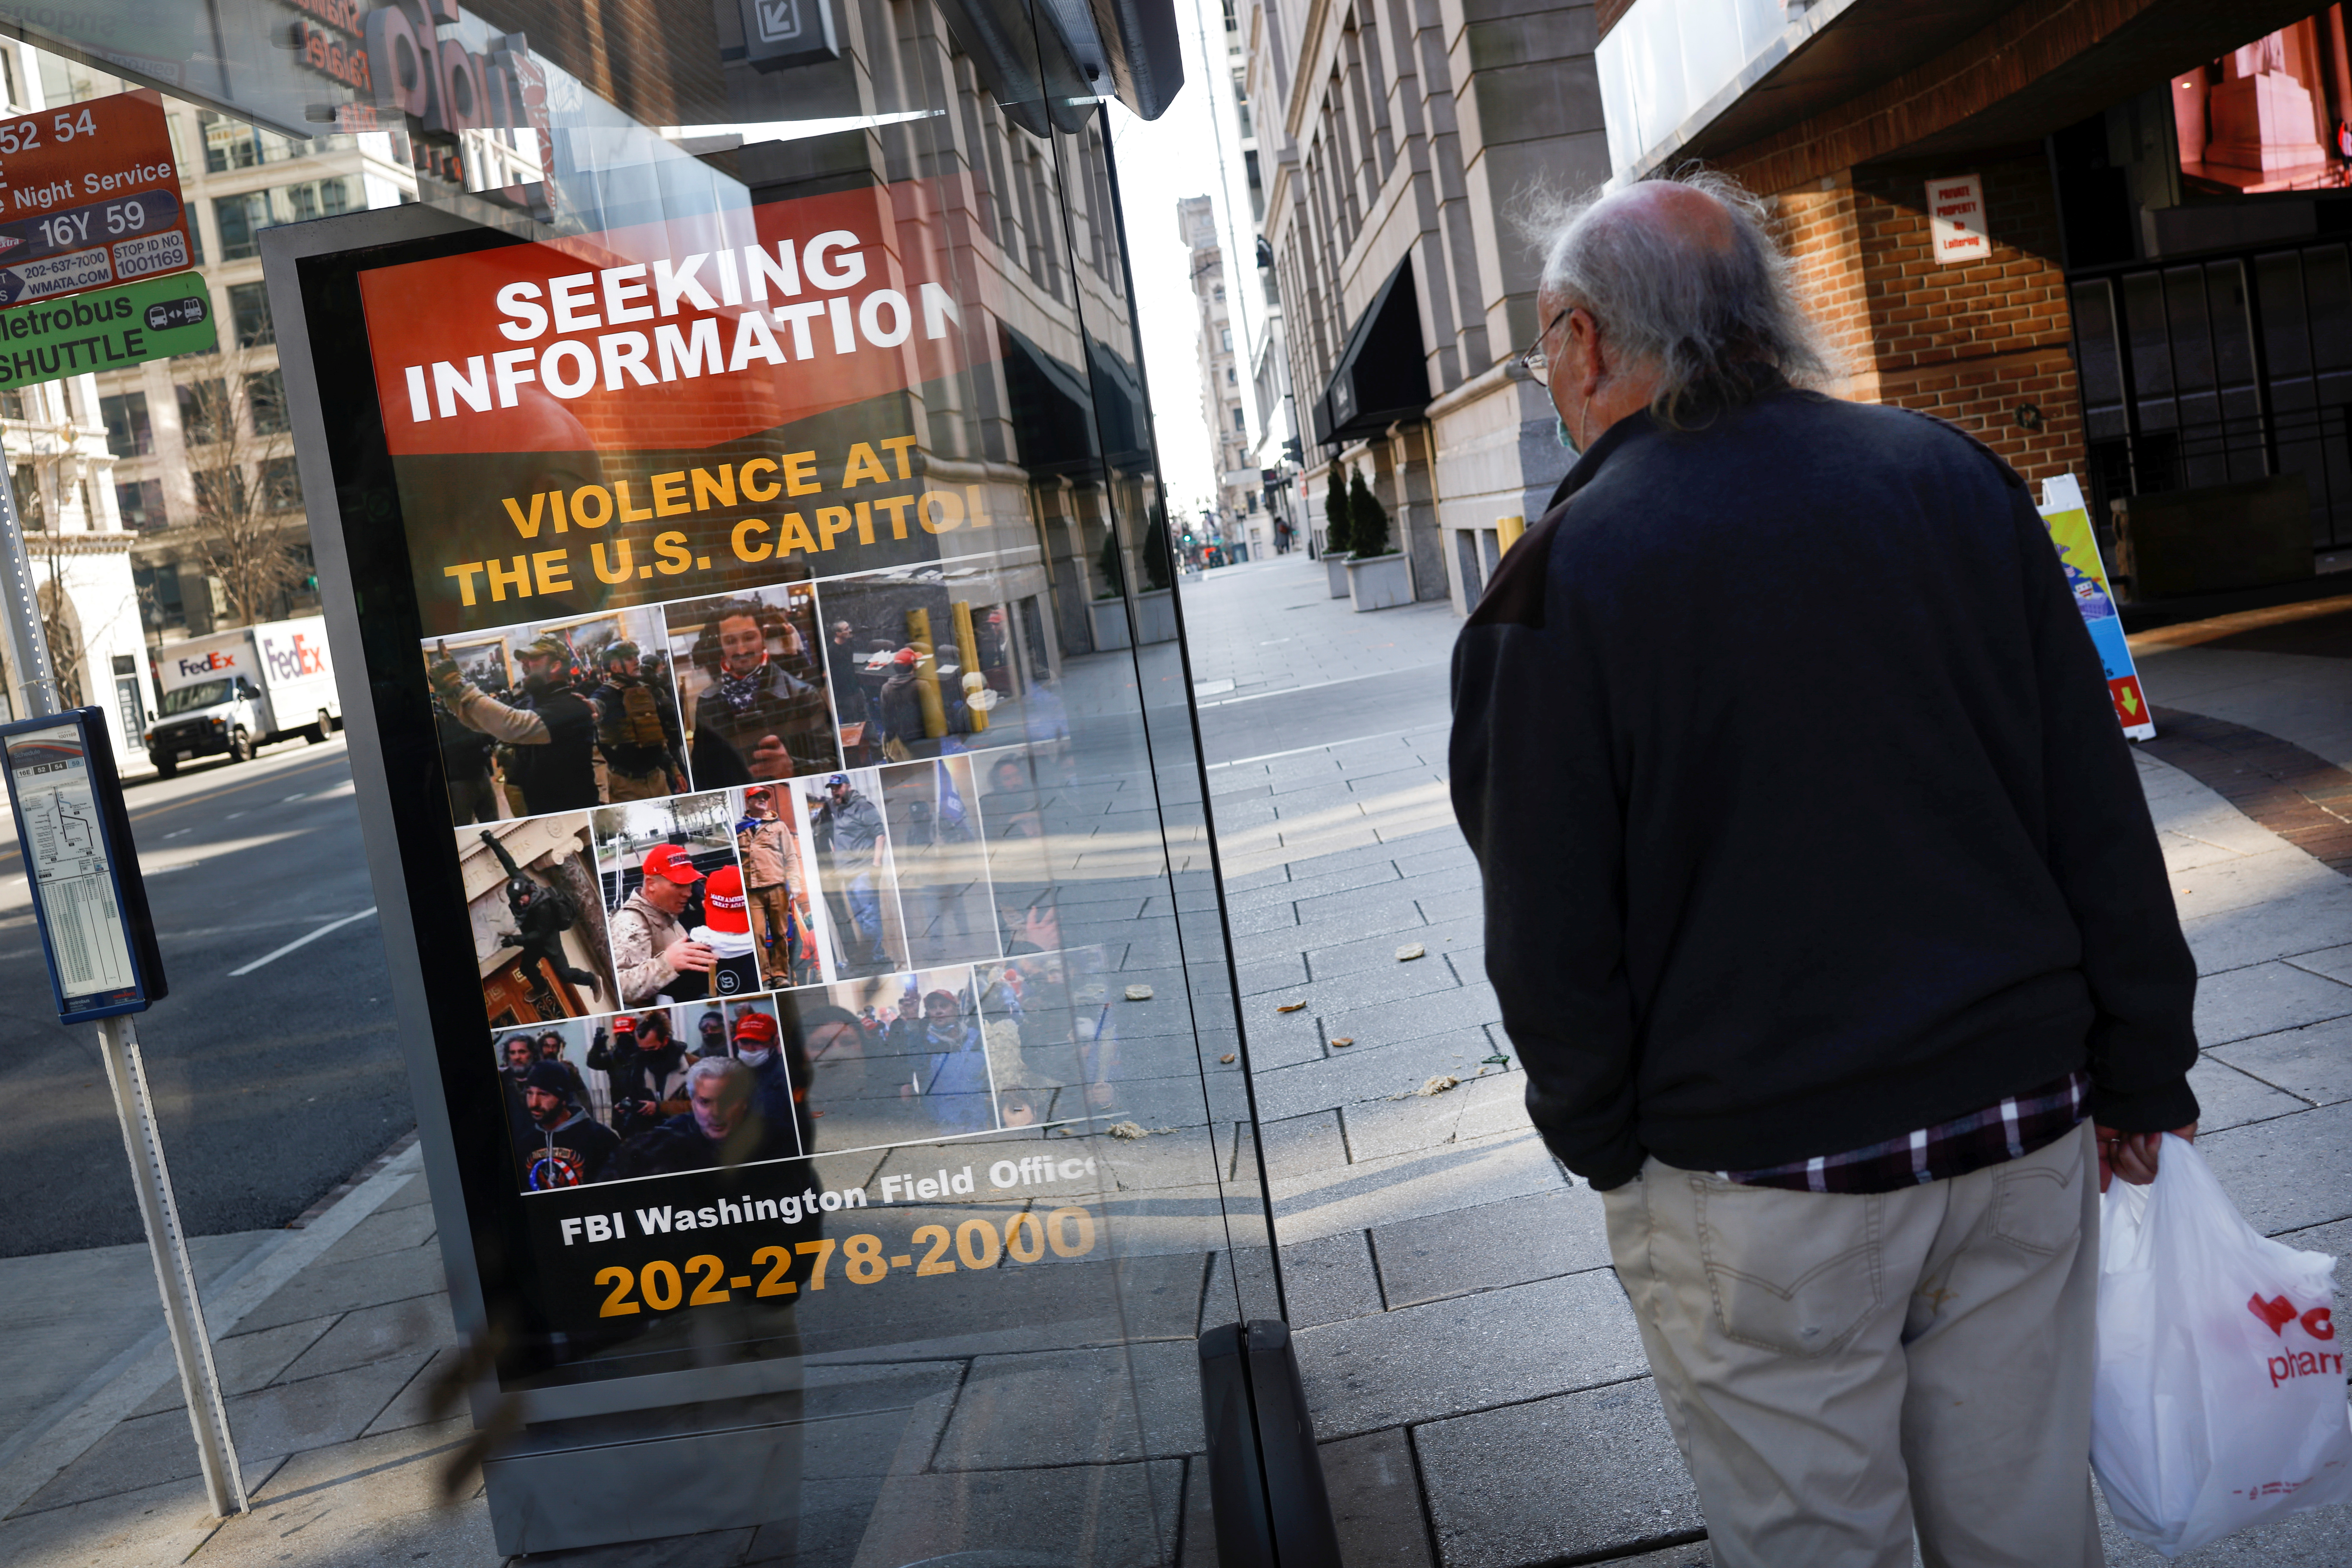 A local resident looks at a billboard with pictures of supporters of U.S. President Donald Trump wanted by the FBI who participated in storming the U.S. Capitol, forcing Congress to postpone a session certifying the results of the 2020 U.S. presidential election, in Washington, U.S., January 13, 2021. REUTERS/Carlos Barria